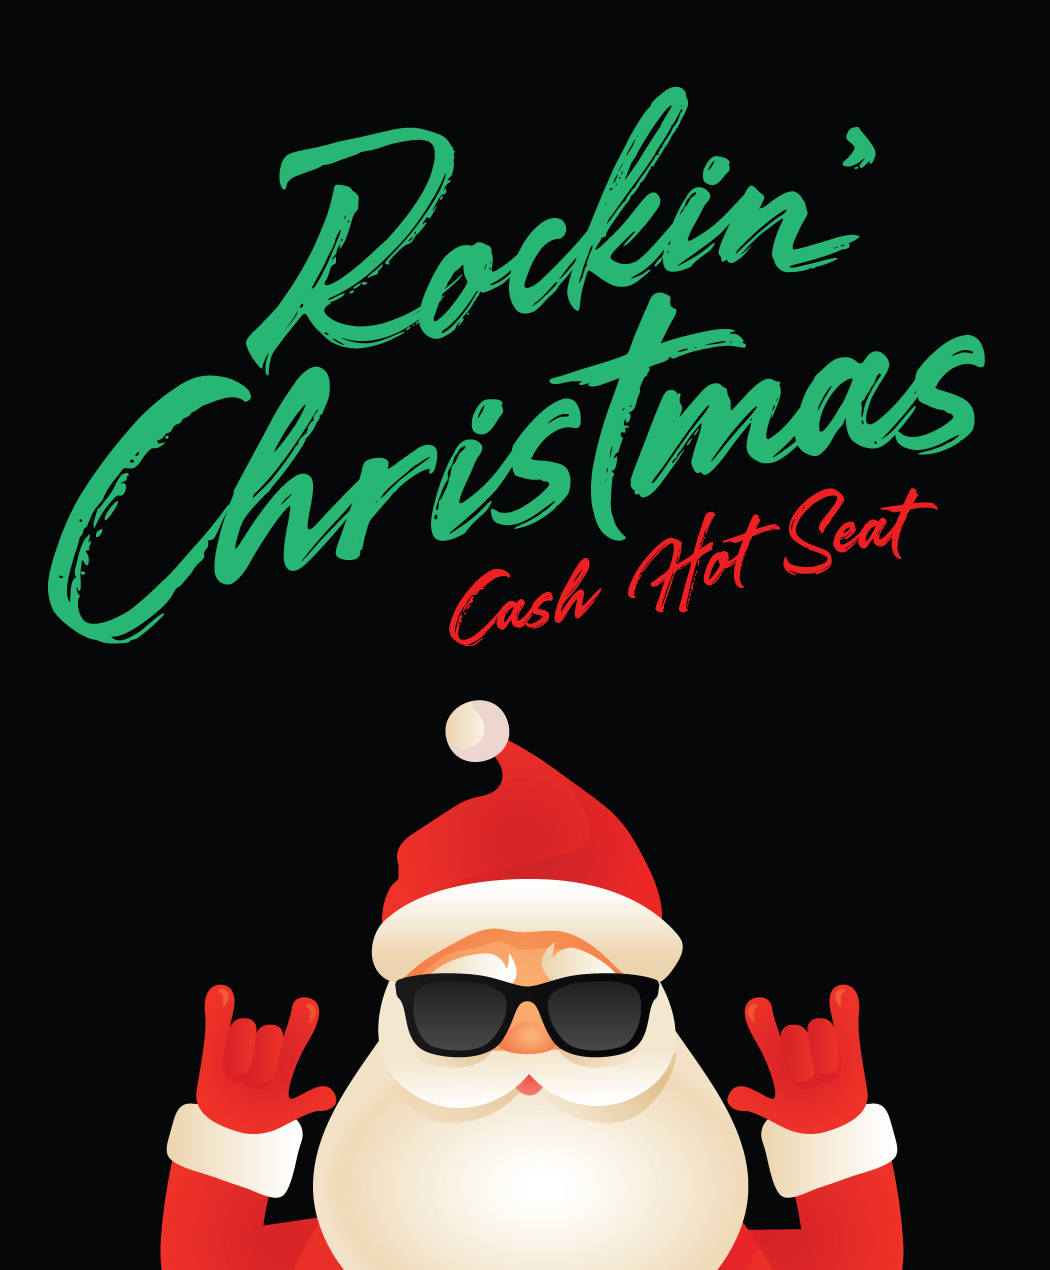 Rockin' Christmas Cash Hot Seat